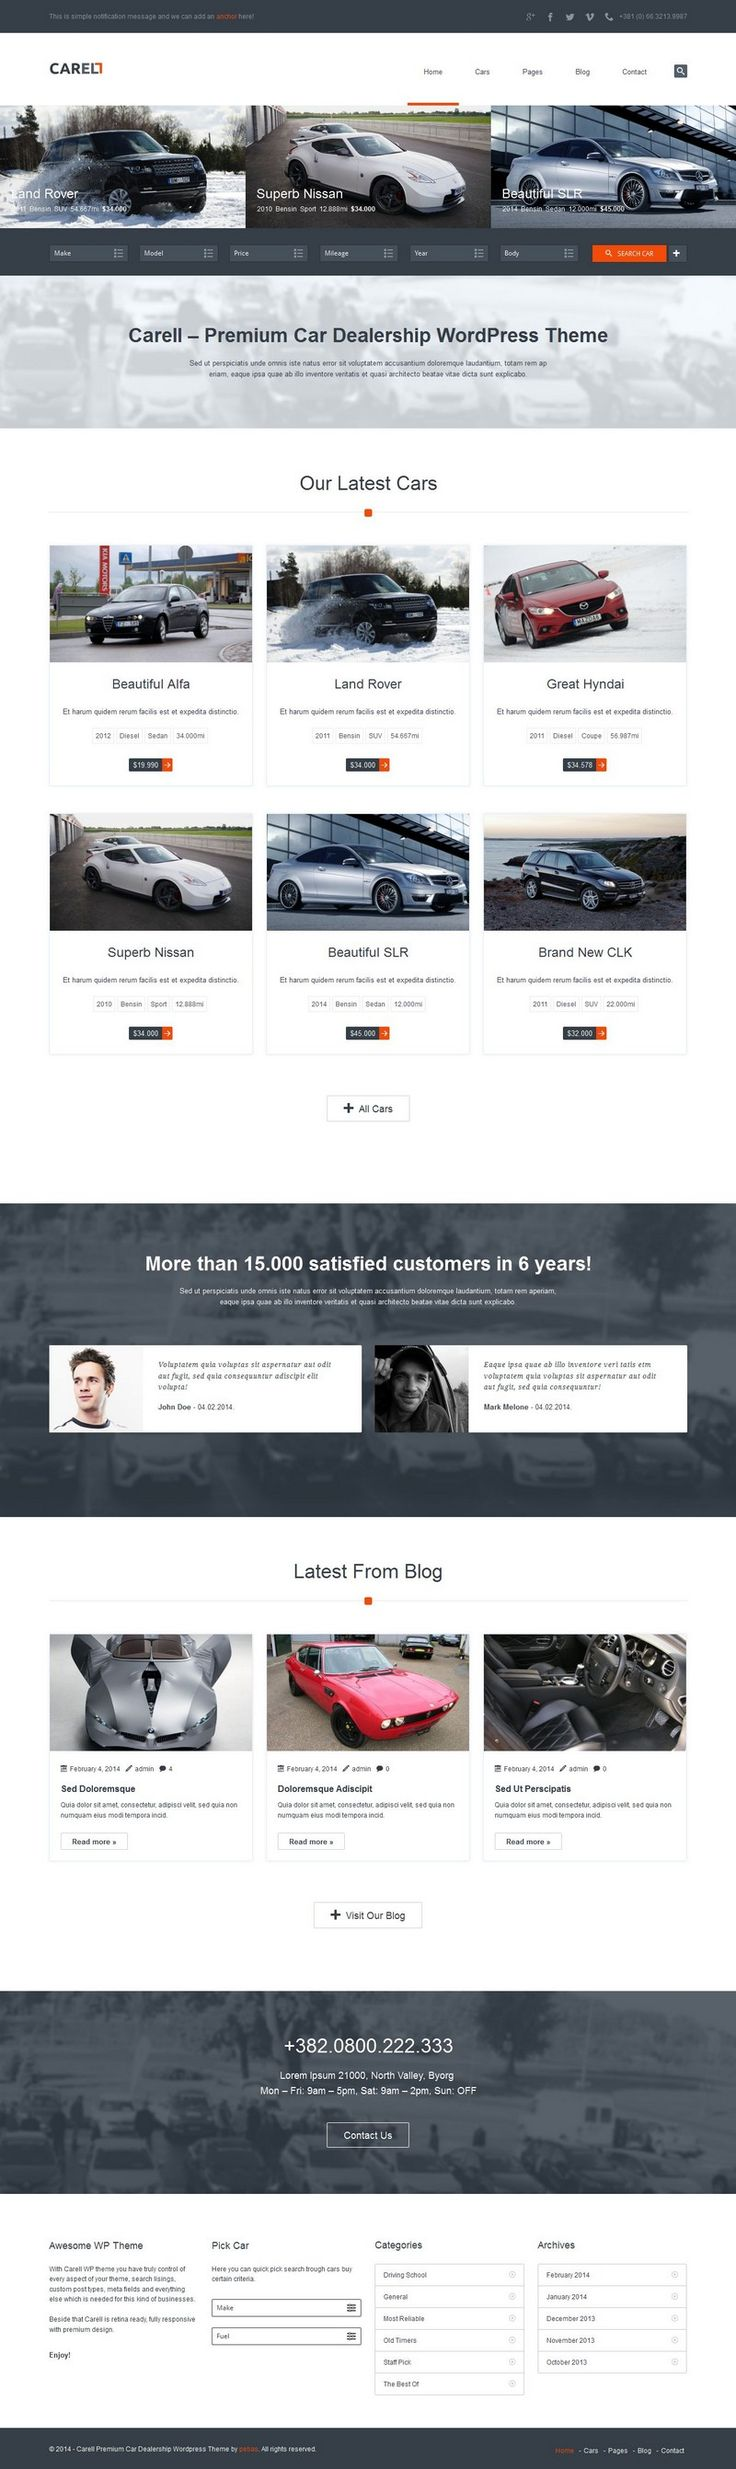 16 best images about Car Dealers Web Design on Pinterest | Volkswagen, Auto motor and Digital ...